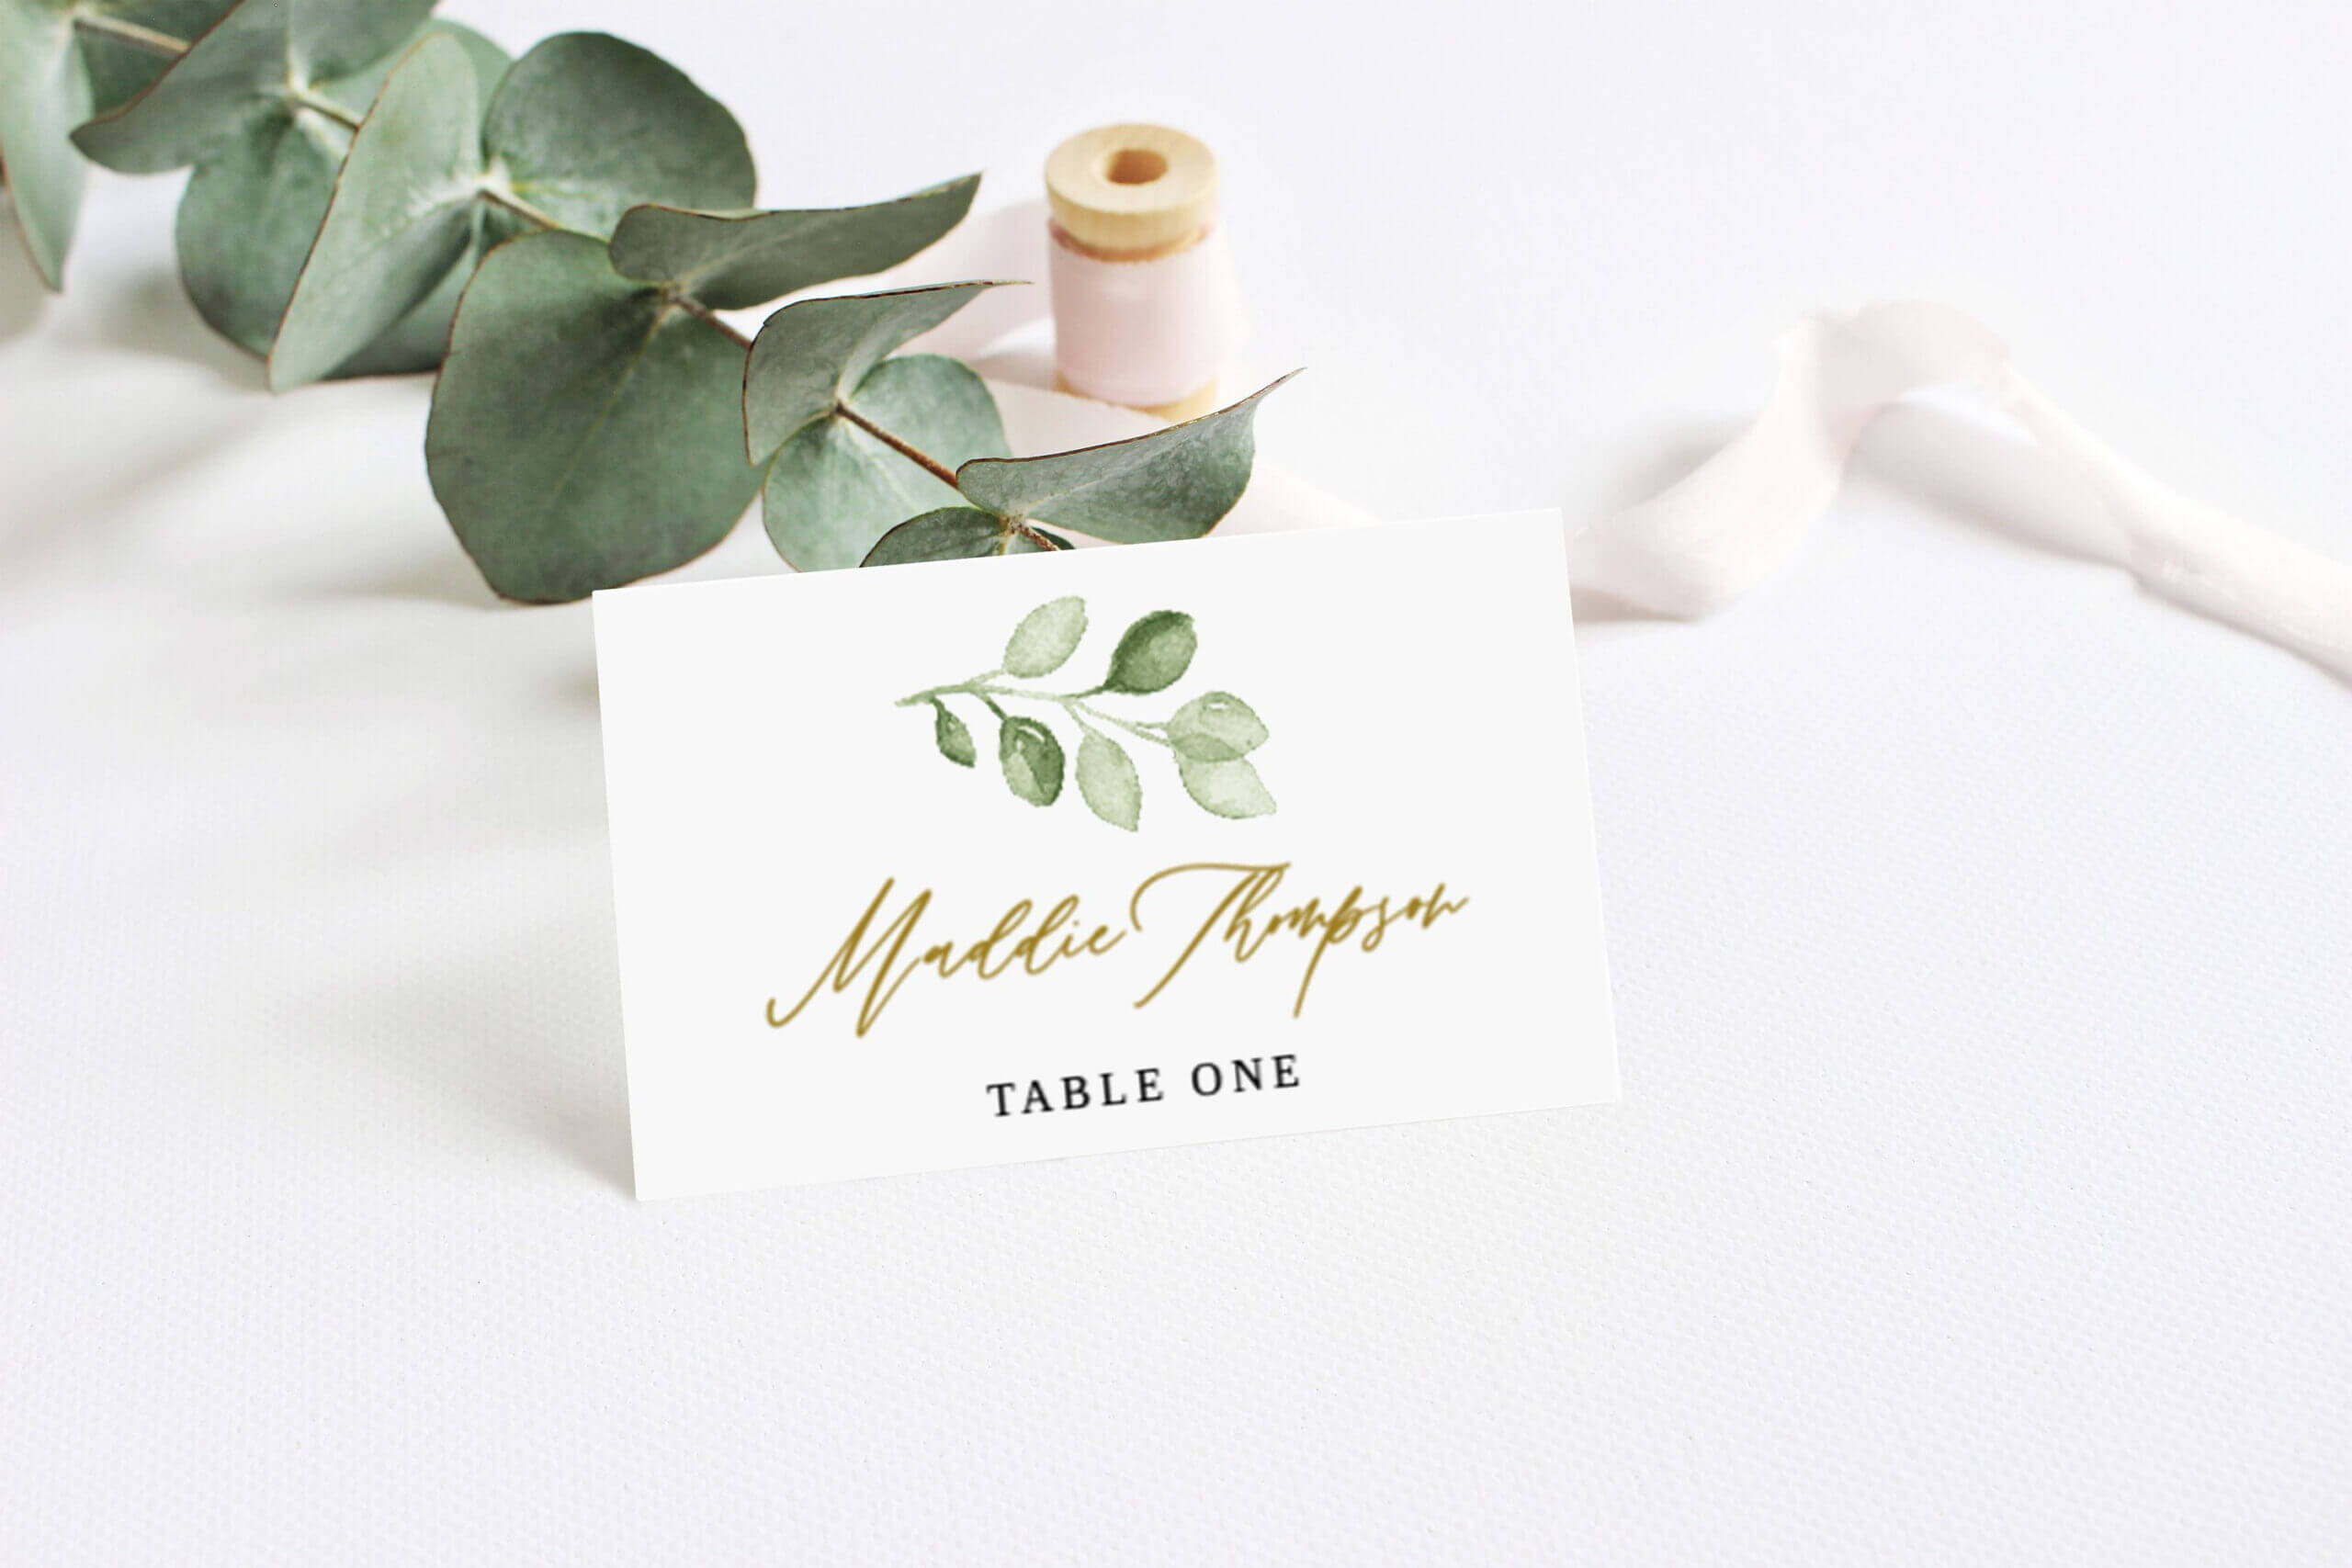 031 Free Place Card Template Excellent Ideas Templates 6 Per In Place Card Template Free 6 Per Page